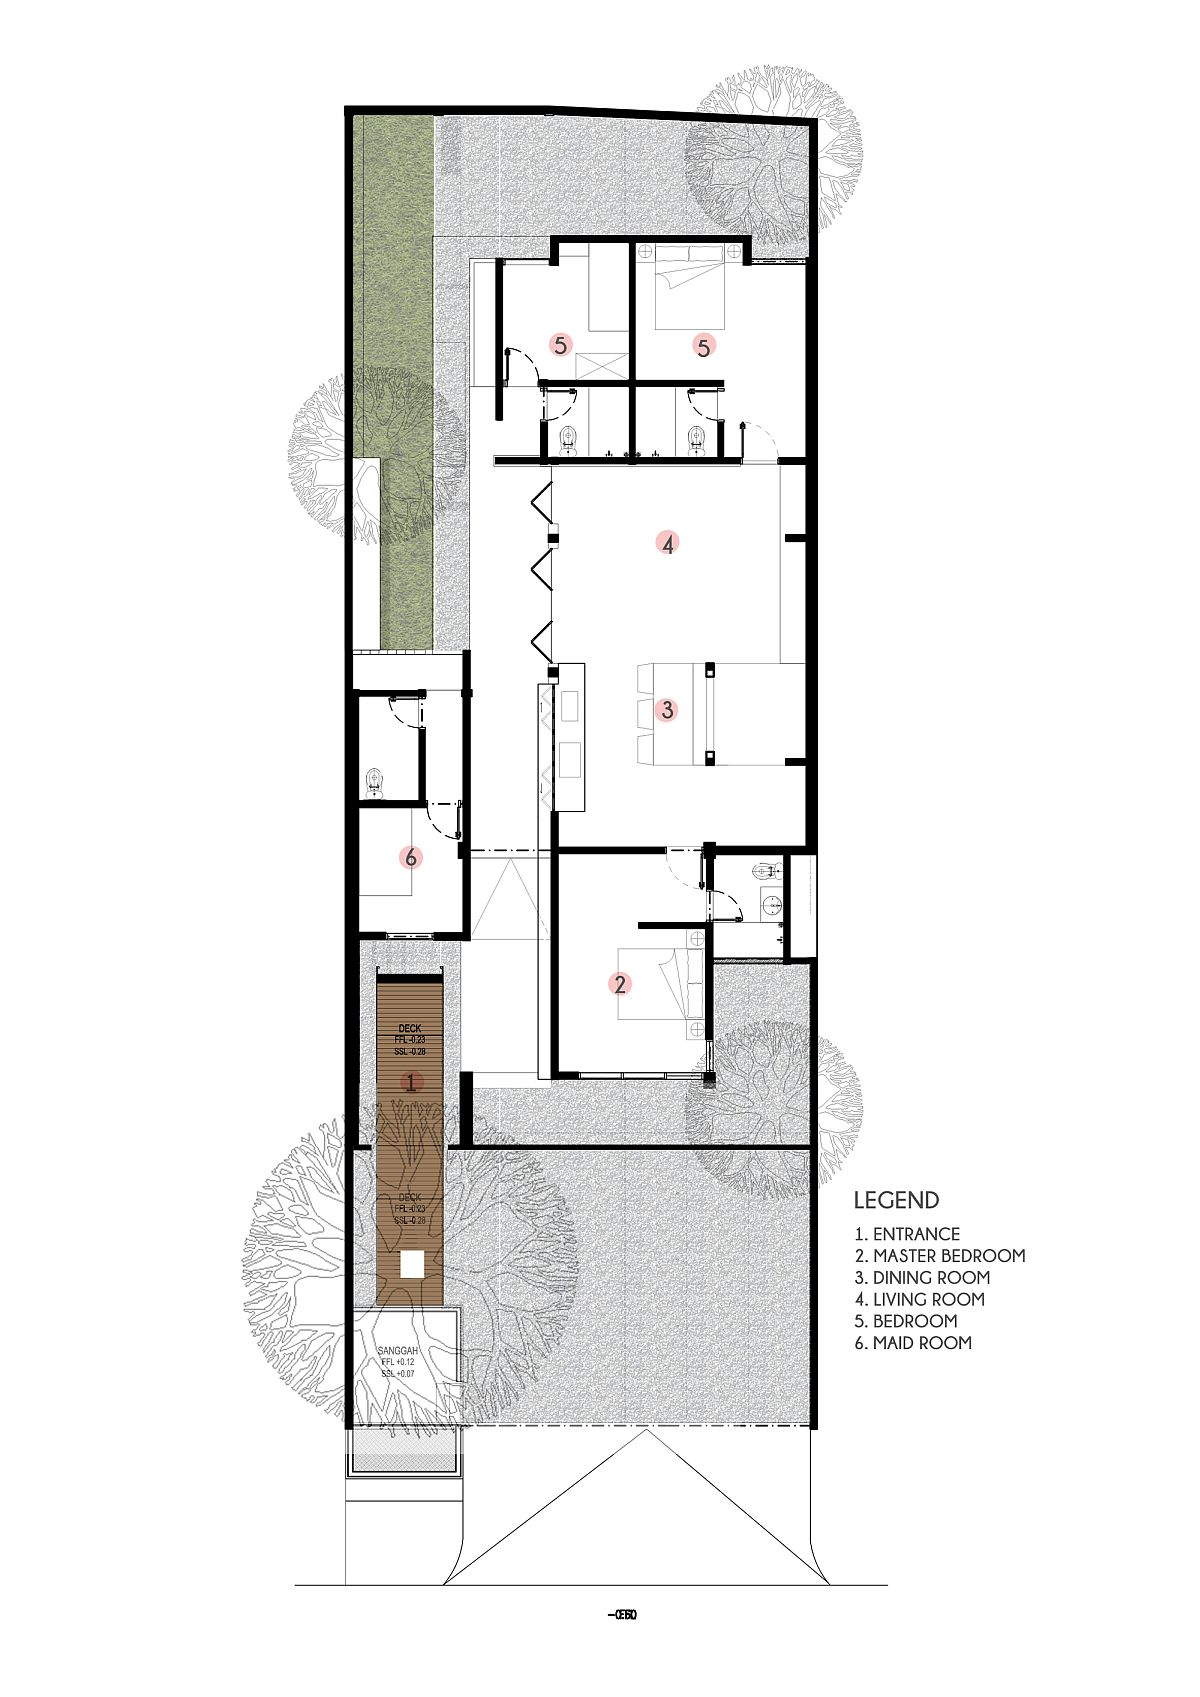 Floor plan of Mandanila House in Bali